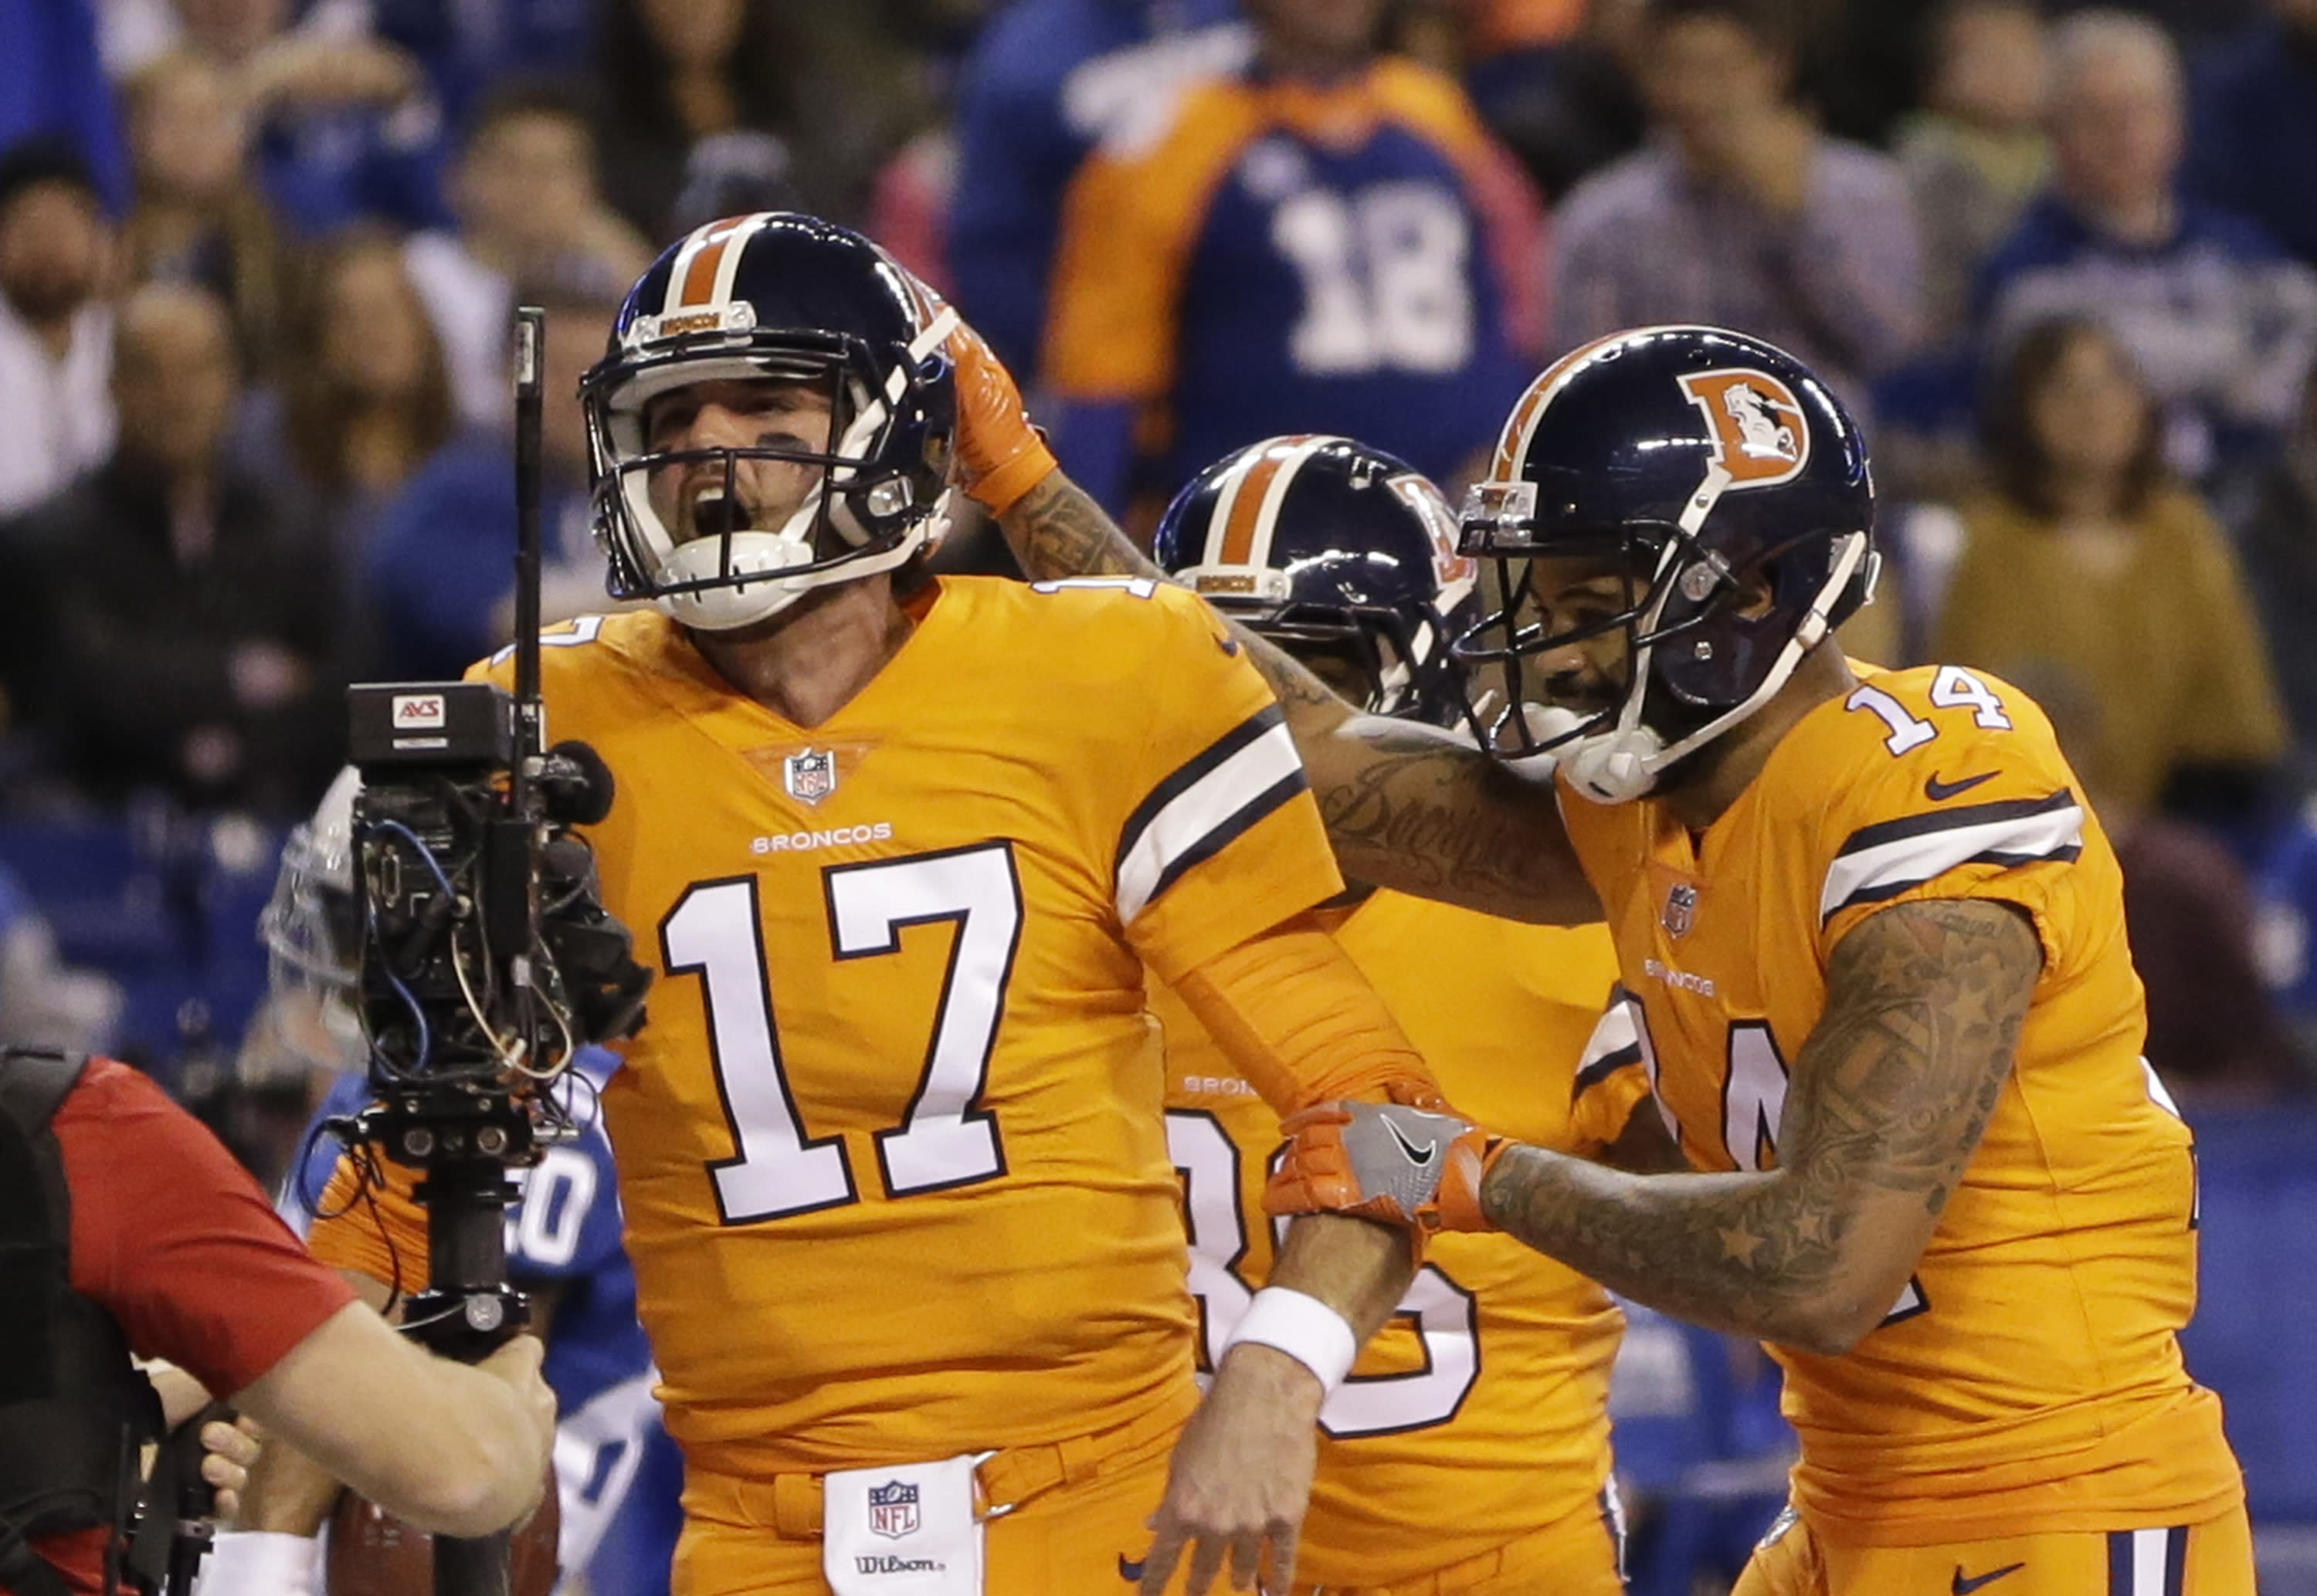 Brock Osweiler emerges to have an unlikely storybook night for Broncos